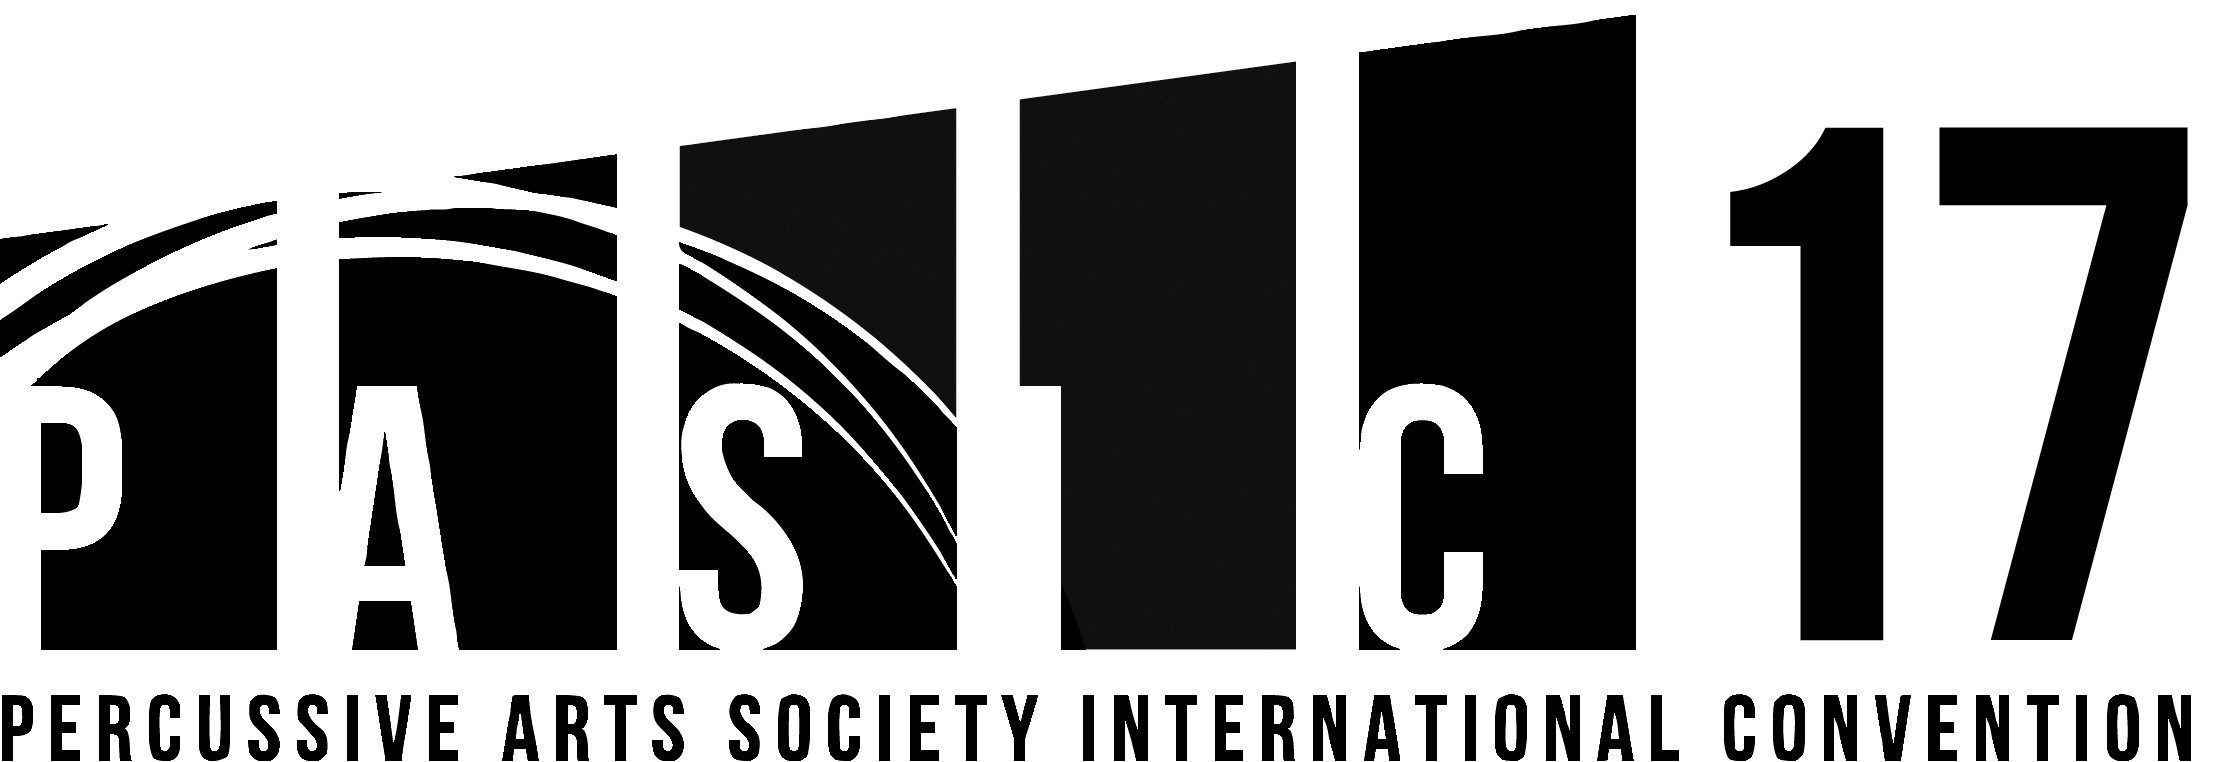 Percussive Arts Society International Convention 2017